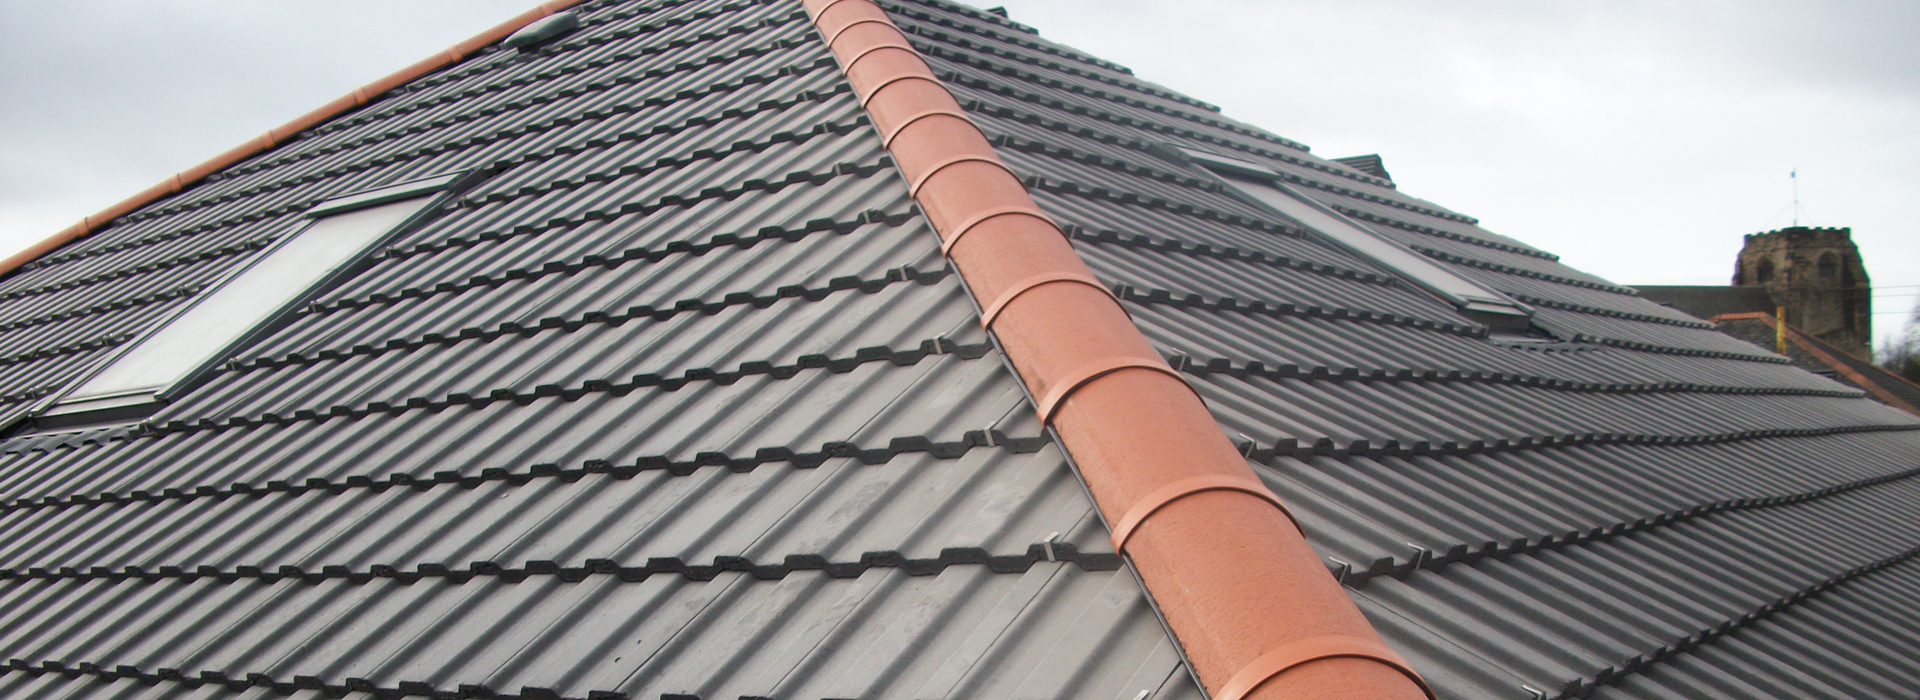 experienced-roofing-contractors-Chicago